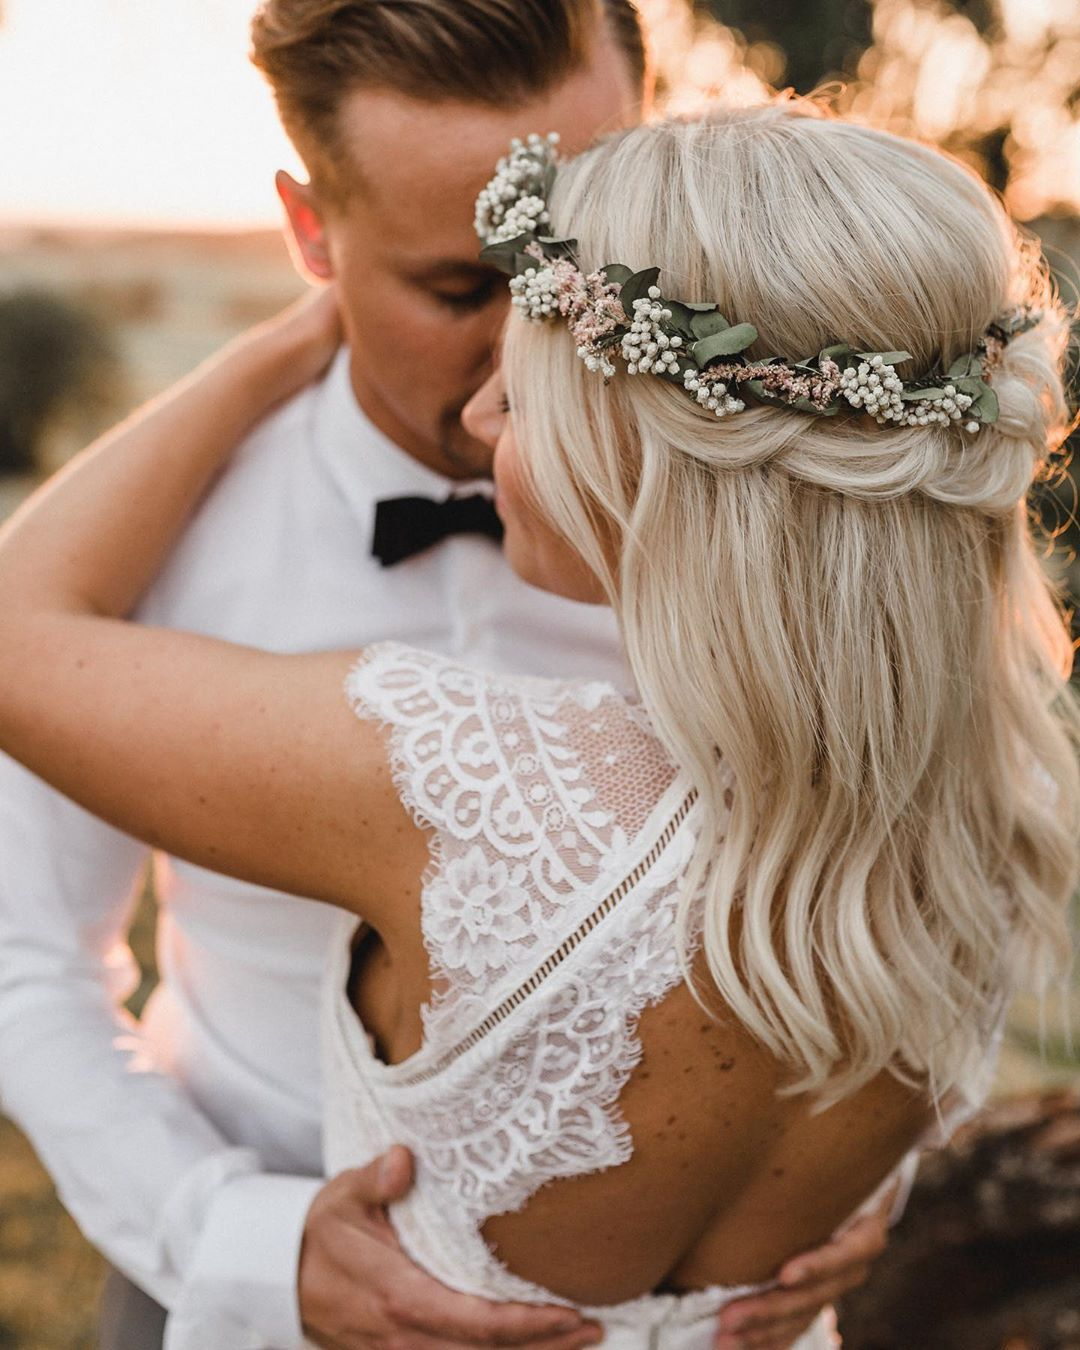 Photo of Braided hair flower wreaths backless wedding dresses couples in love wi